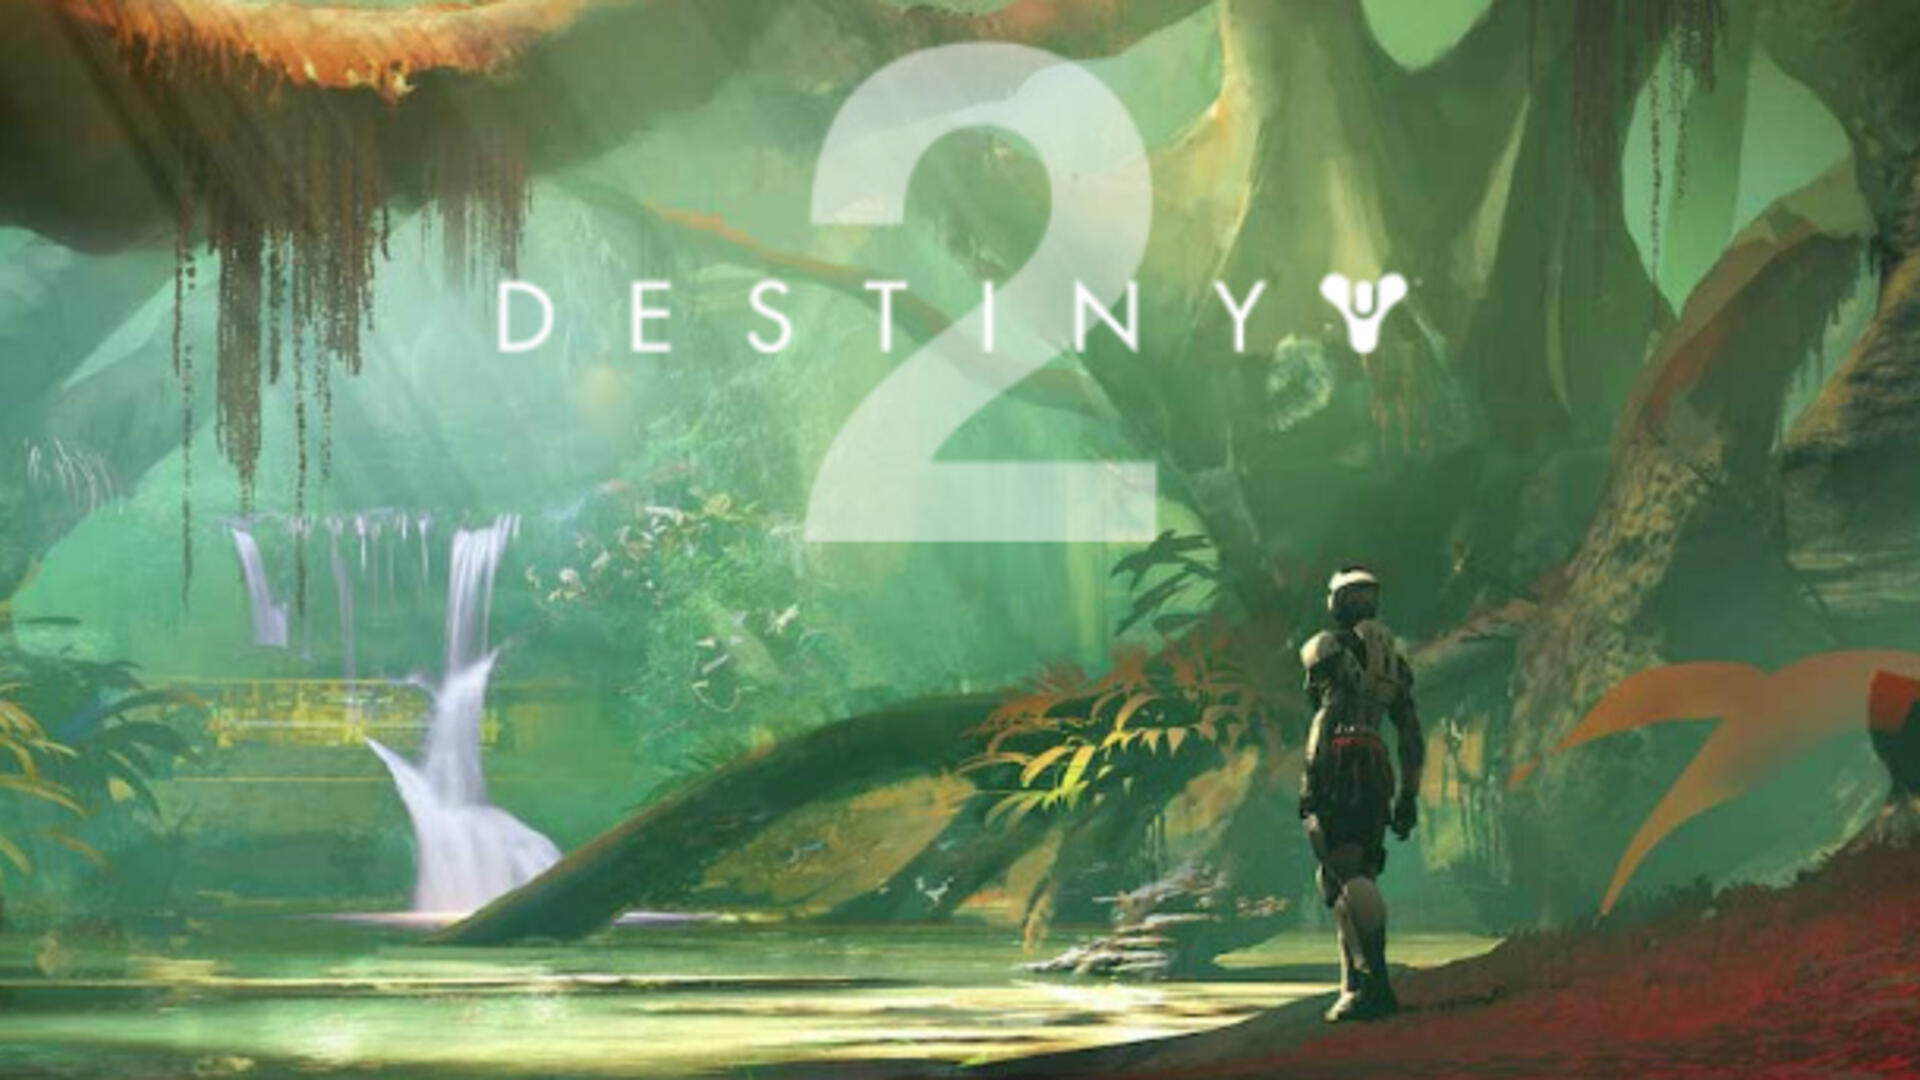 Destiny 2 is Getting Some Much Needed Endgame Improvements Over the Next Few Months